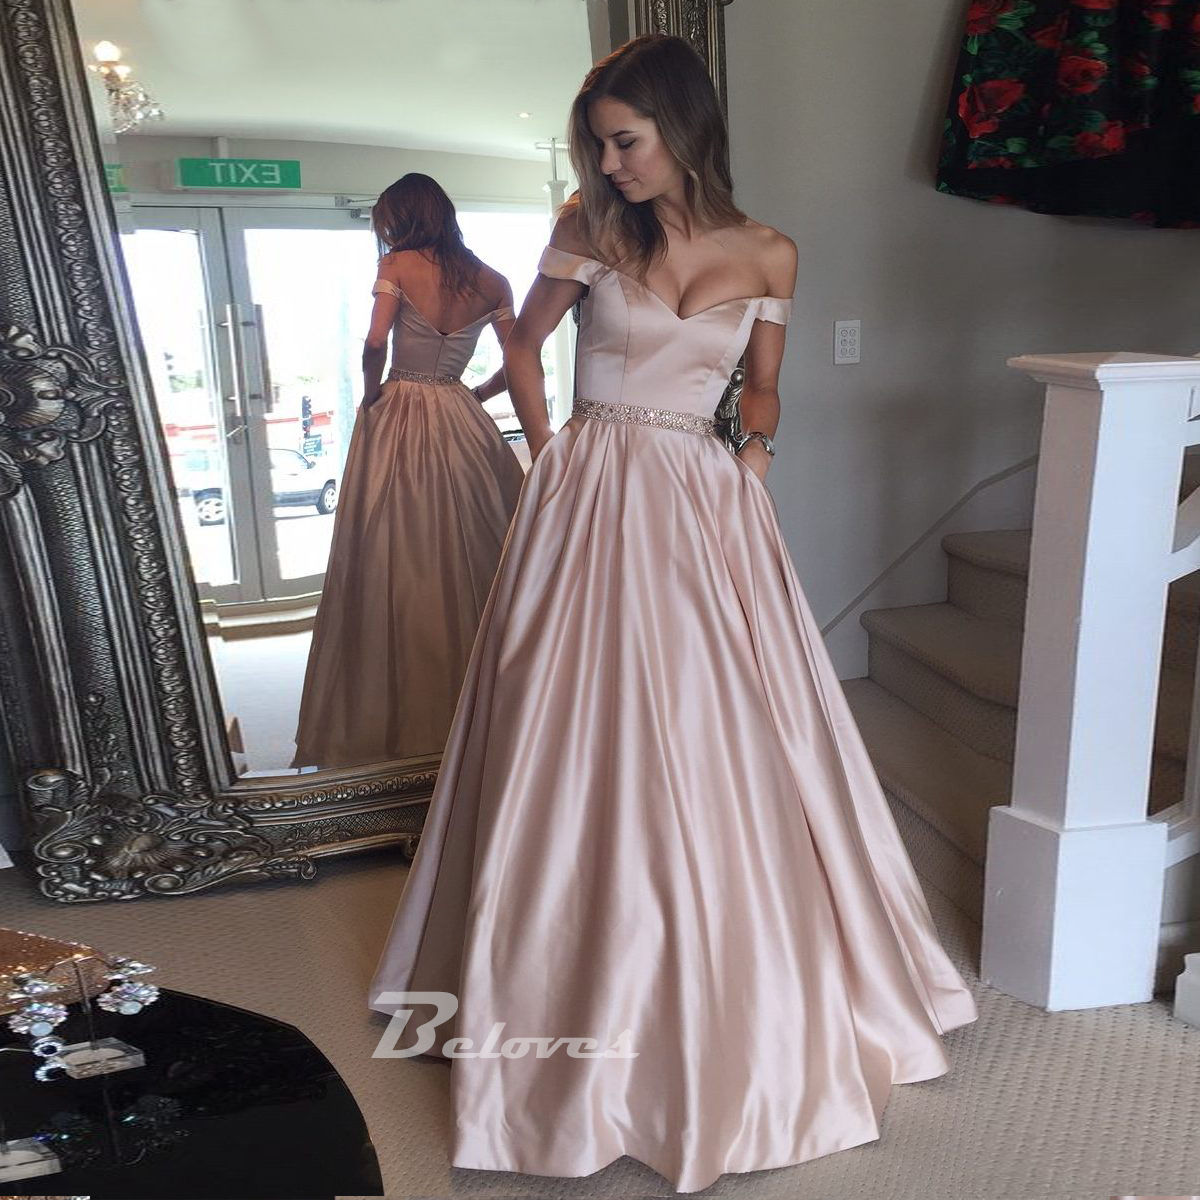 8706eb9bdcf 2017 Pink Off The Shoulder Prom Dress